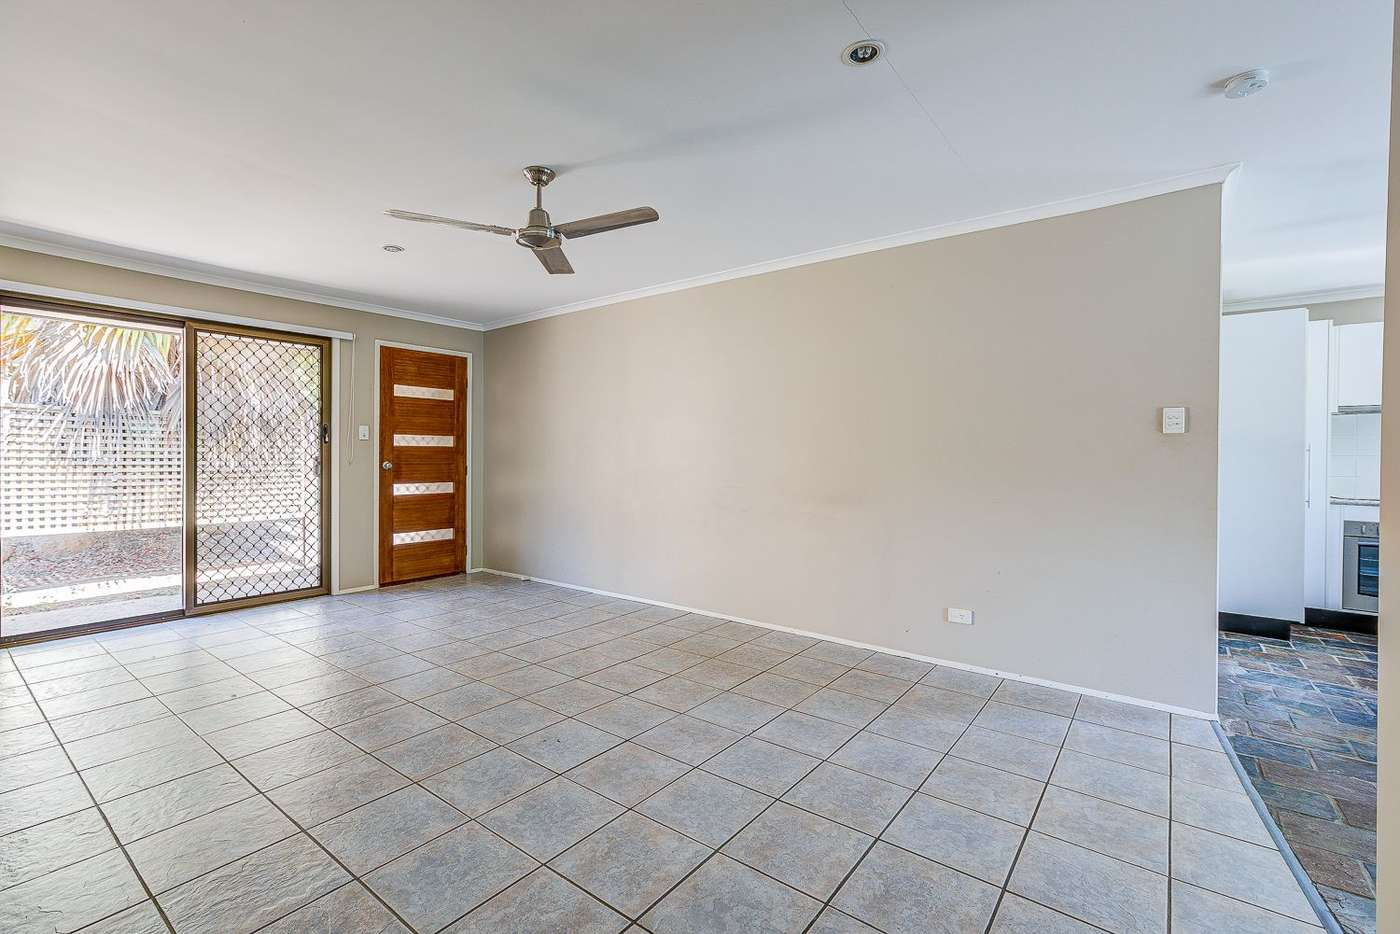 Sixth view of Homely house listing, 6/54 Dorset Drive, Rochedale South QLD 4123